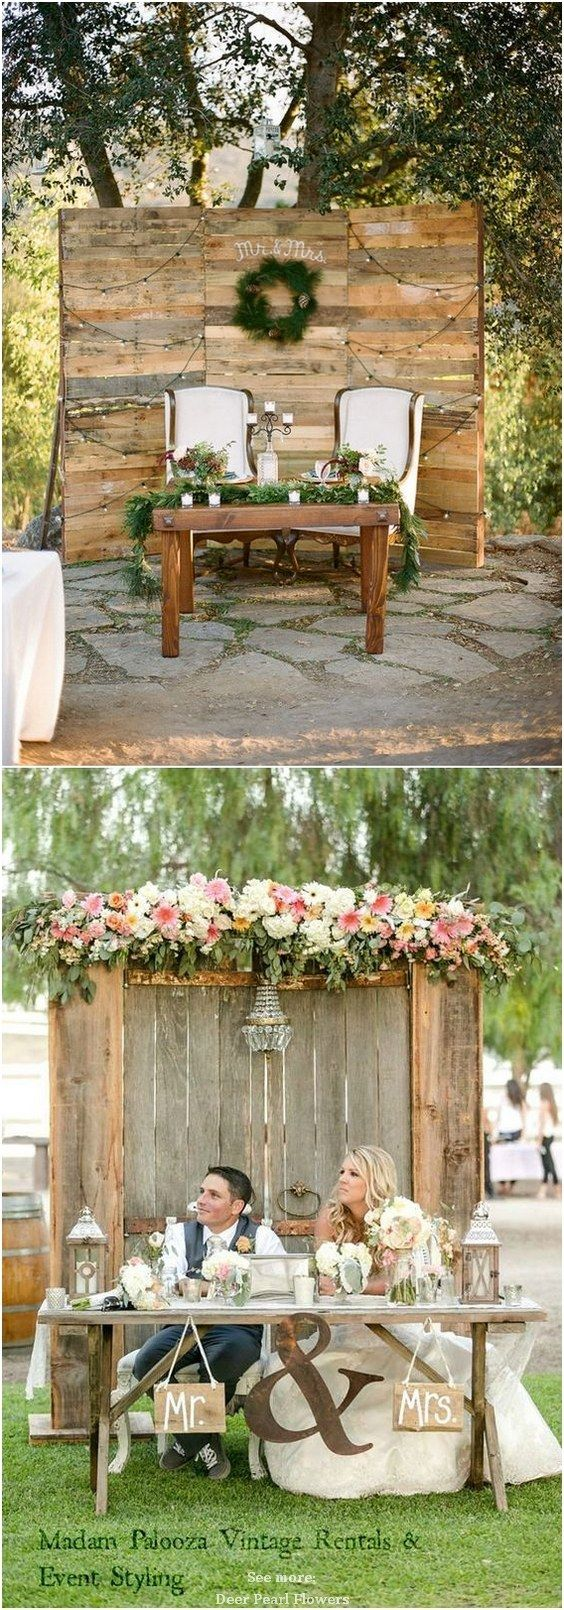 wedding ideas rustic country top 20 rustic country wedding sweetheart table ideas 28298